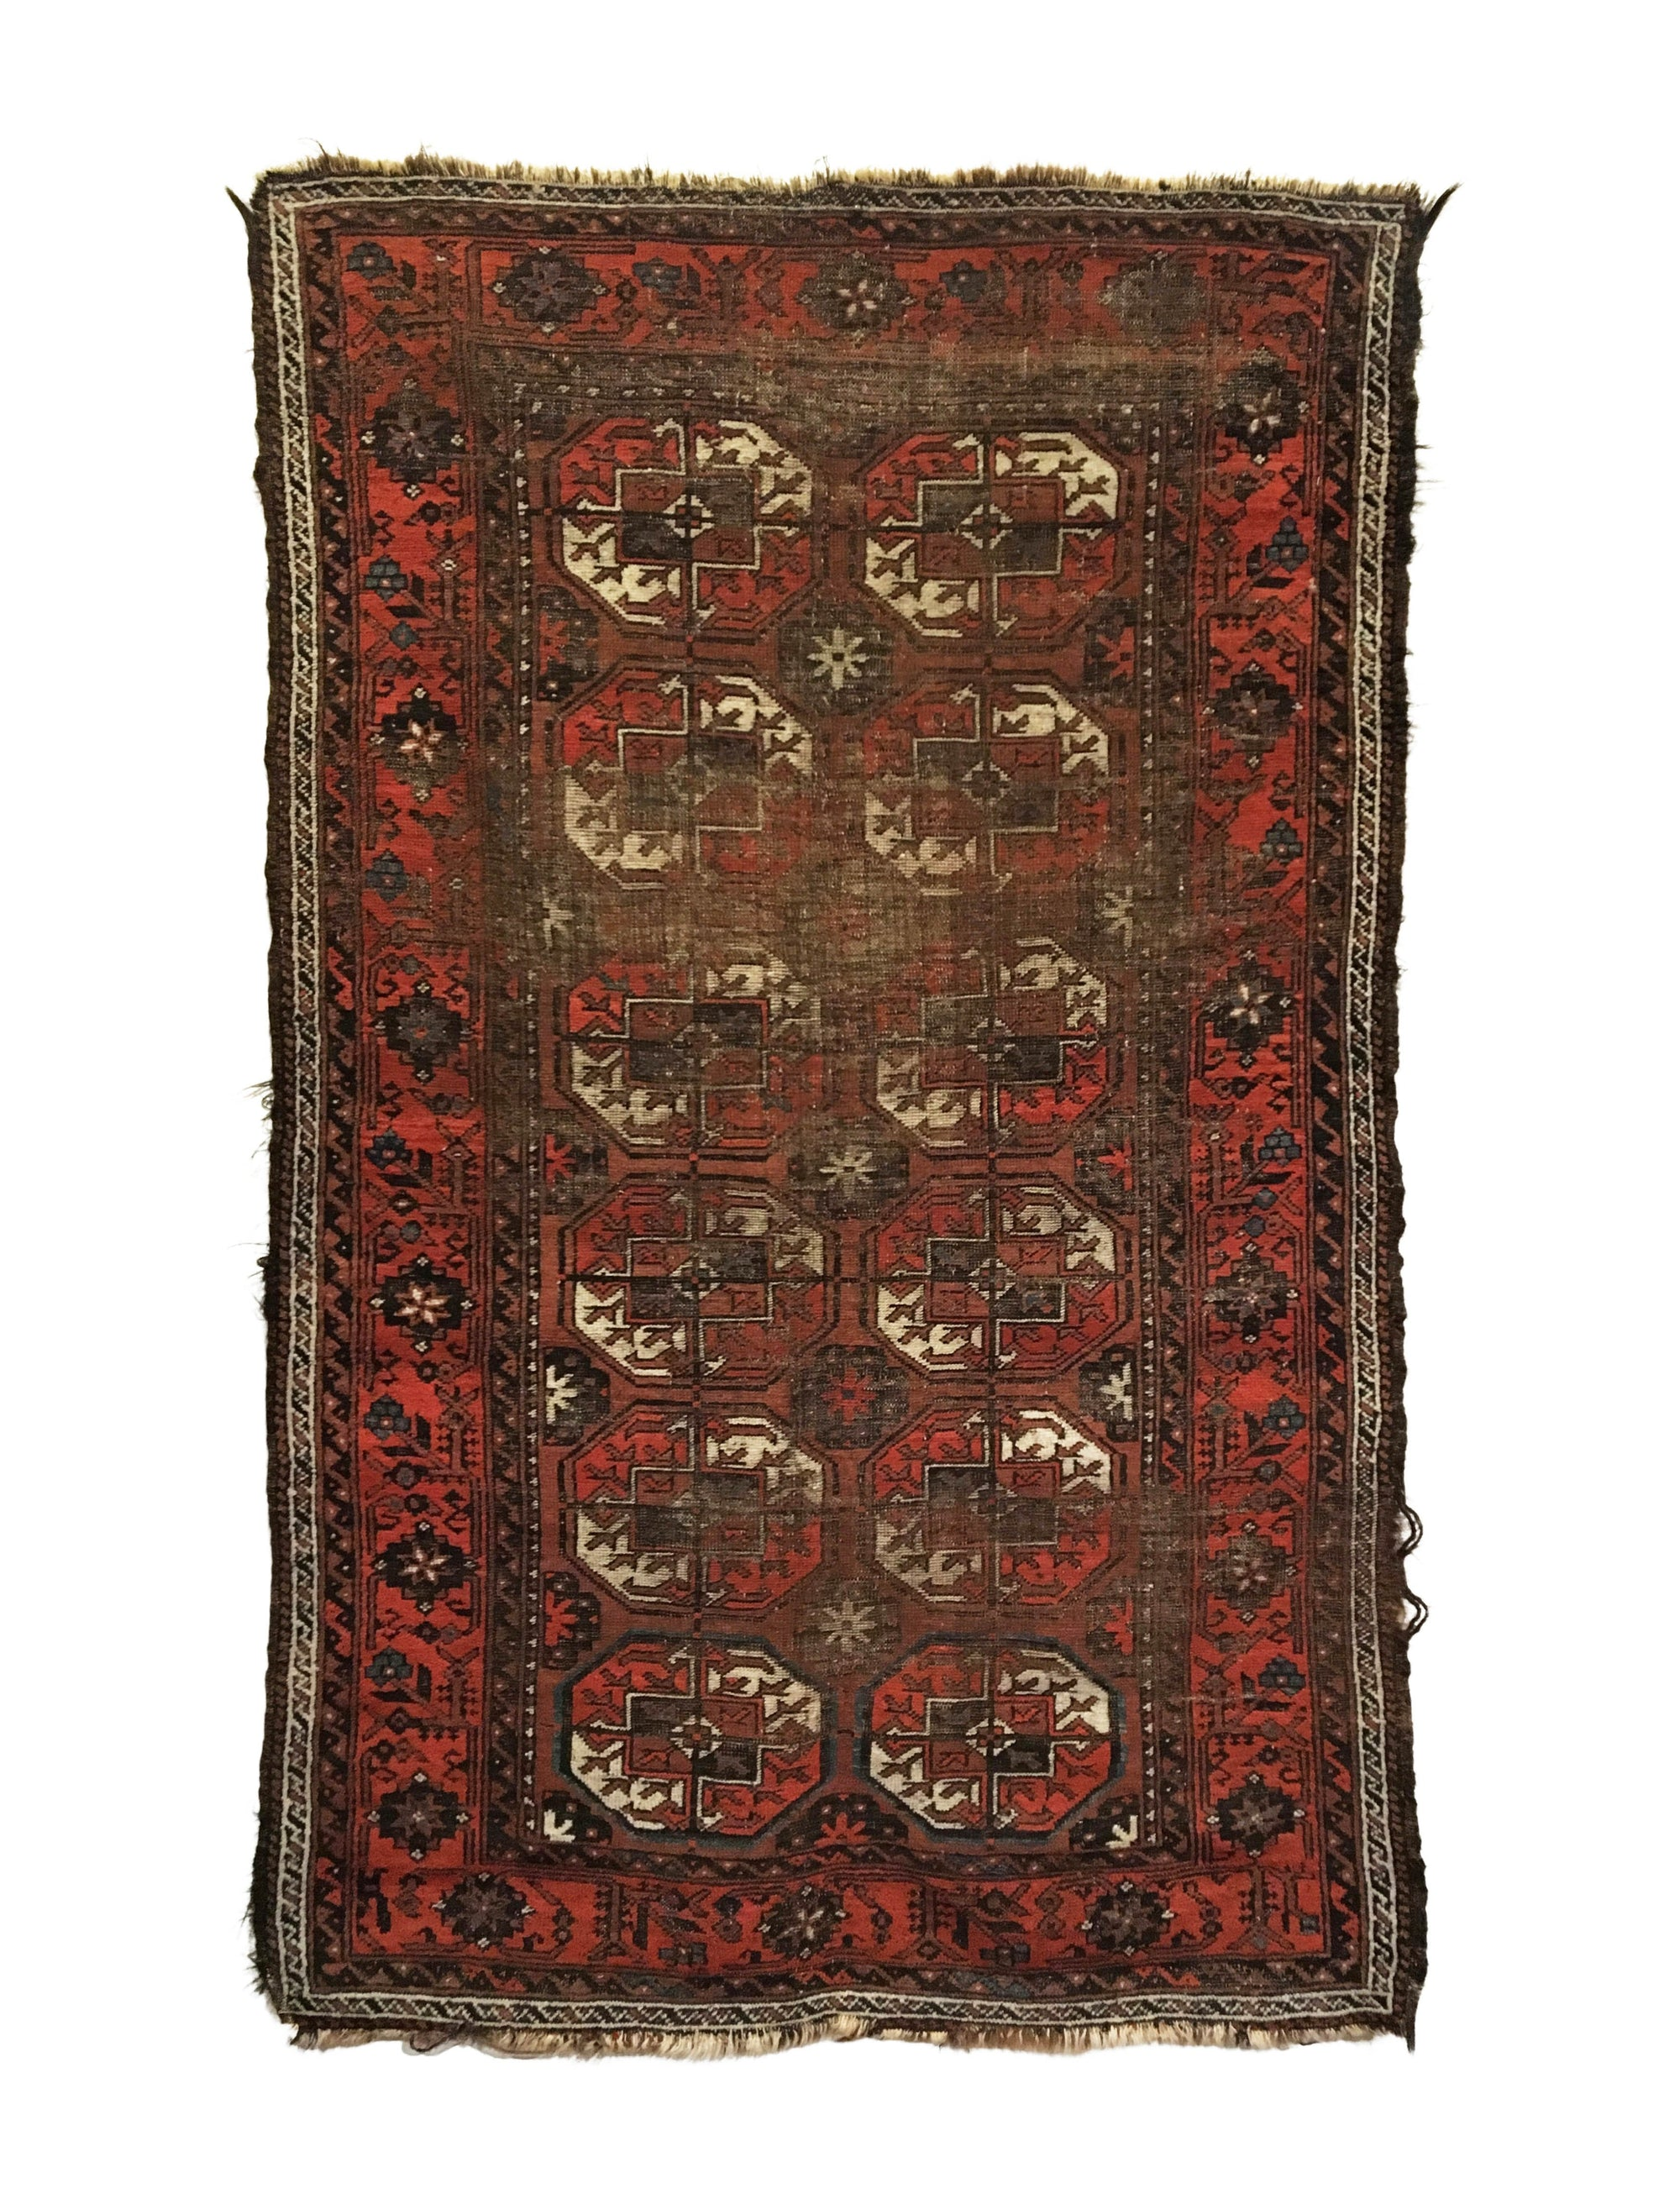 Antique Distressed Baluch Long Rug 4'0 x 6'6